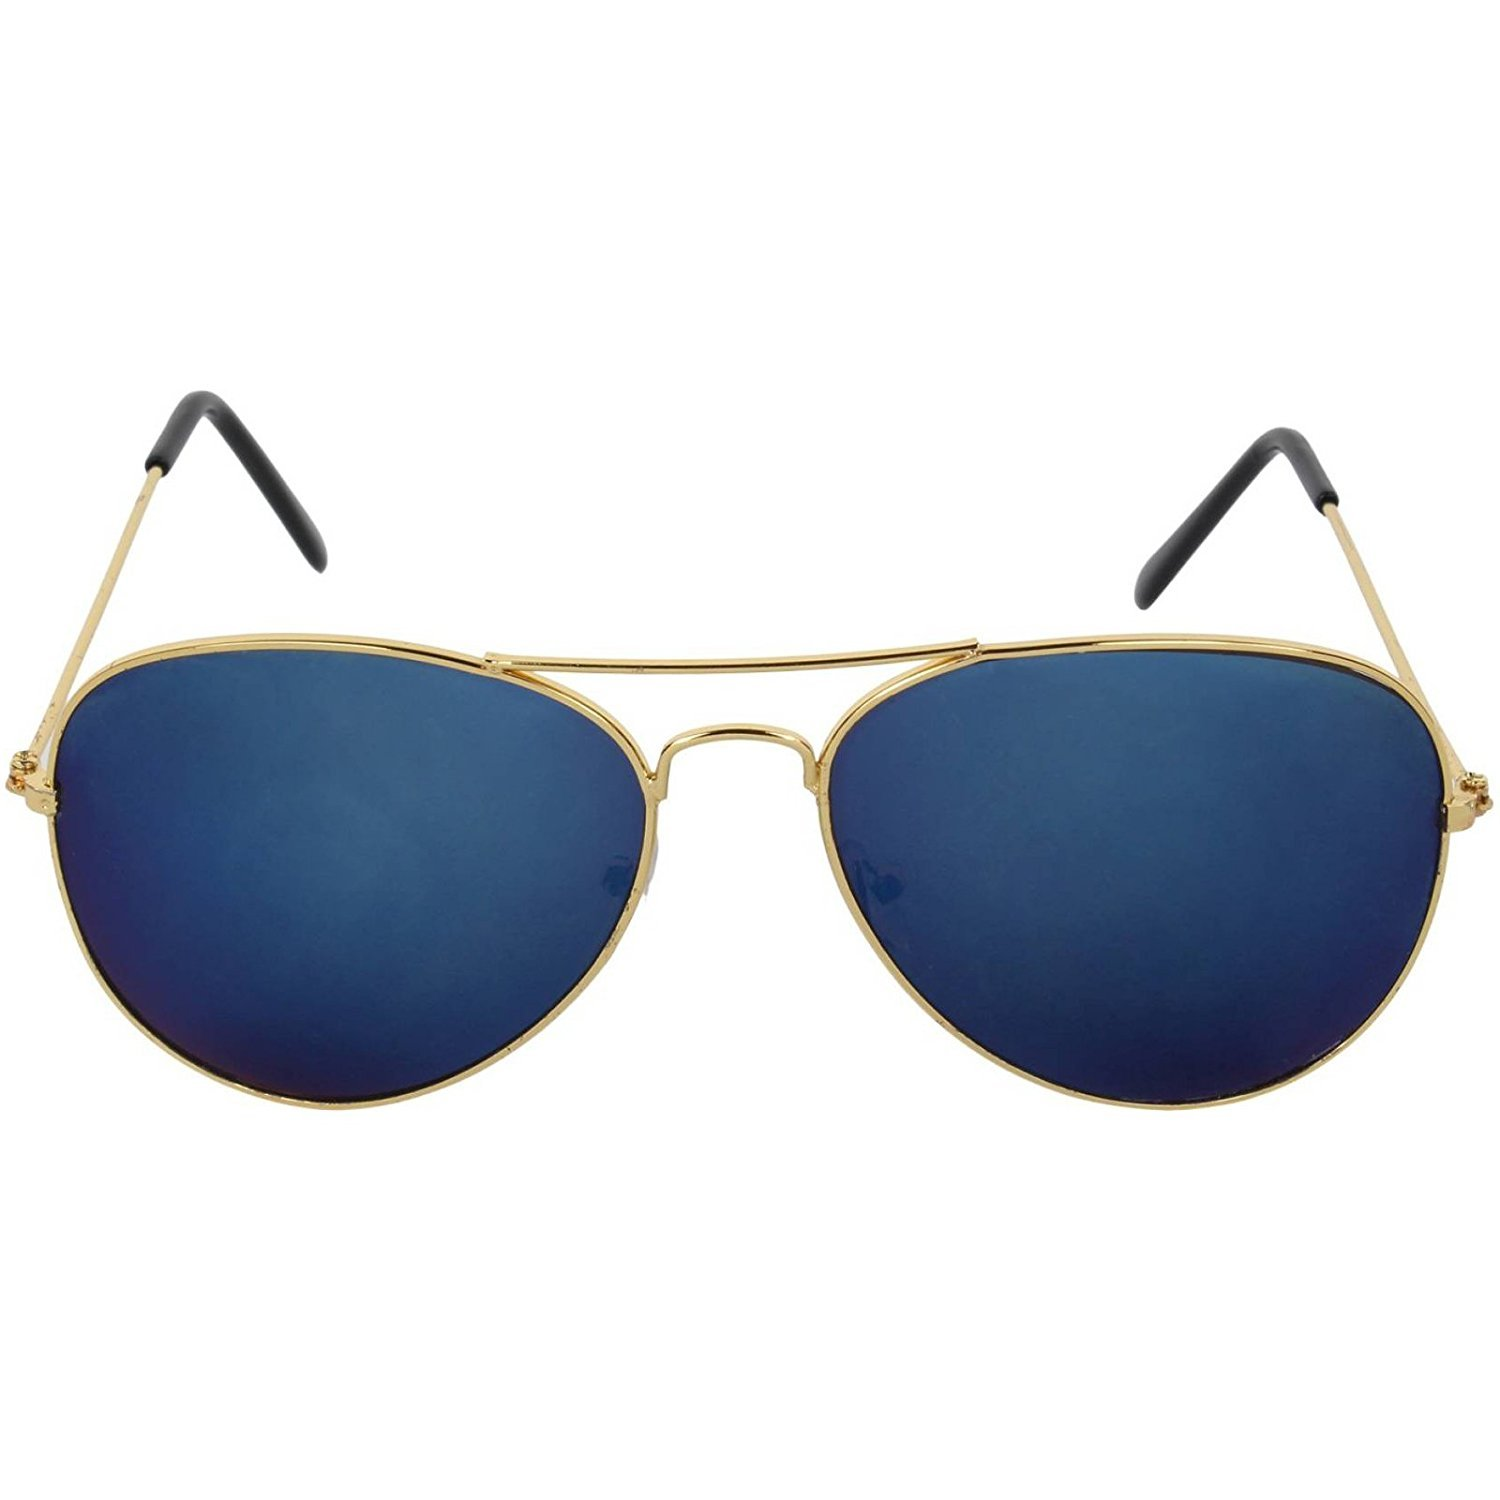 ffd4aa1b7f5 Dervin Blue Lens Golden Frame Aviator Sunglasses for Men and Women  Amazon. in  Clothing   Accessories